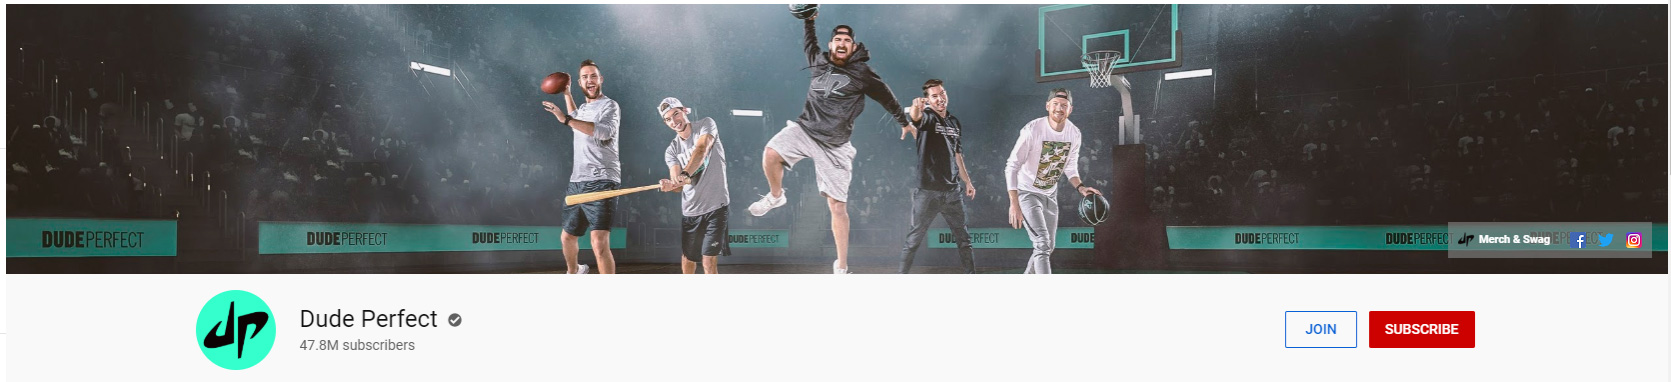 dude perfect youtube